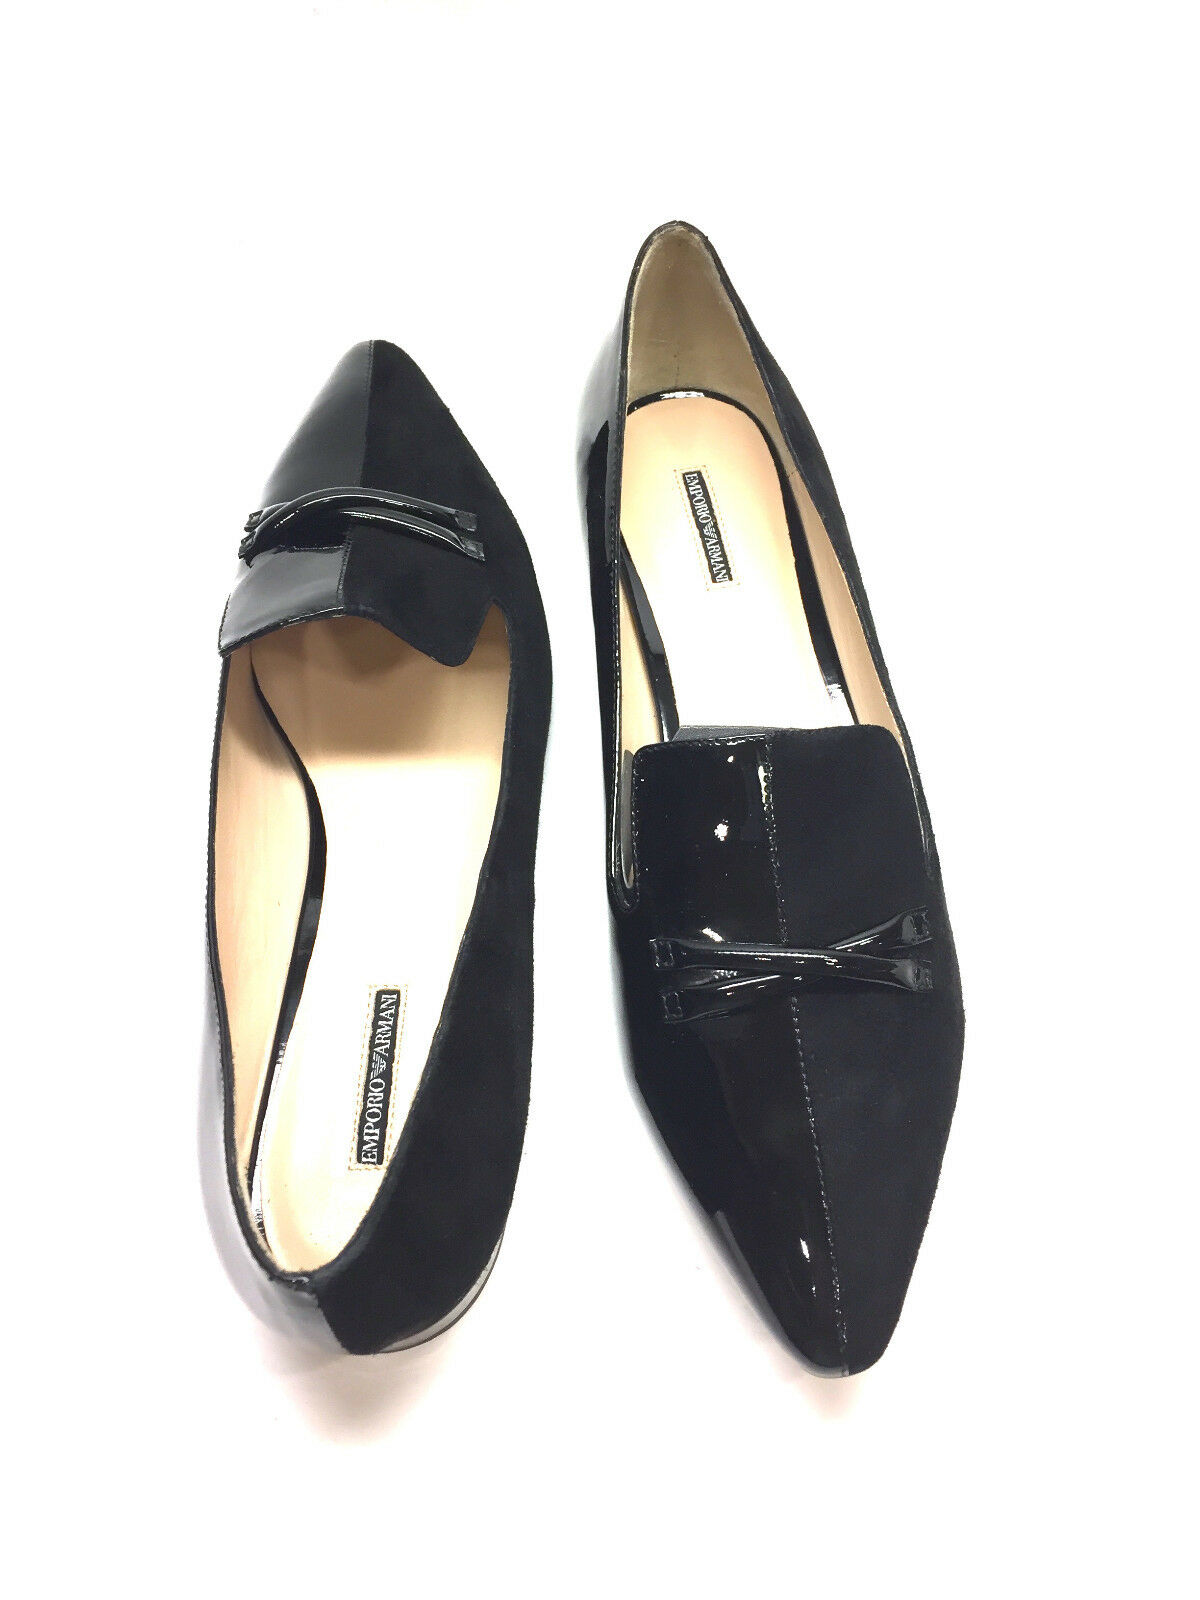 New EMPORIO ARMANI Black Suede Suede Suede Patent Leather Pointed-Toe Tuxedo Flats Sz40 b557e8